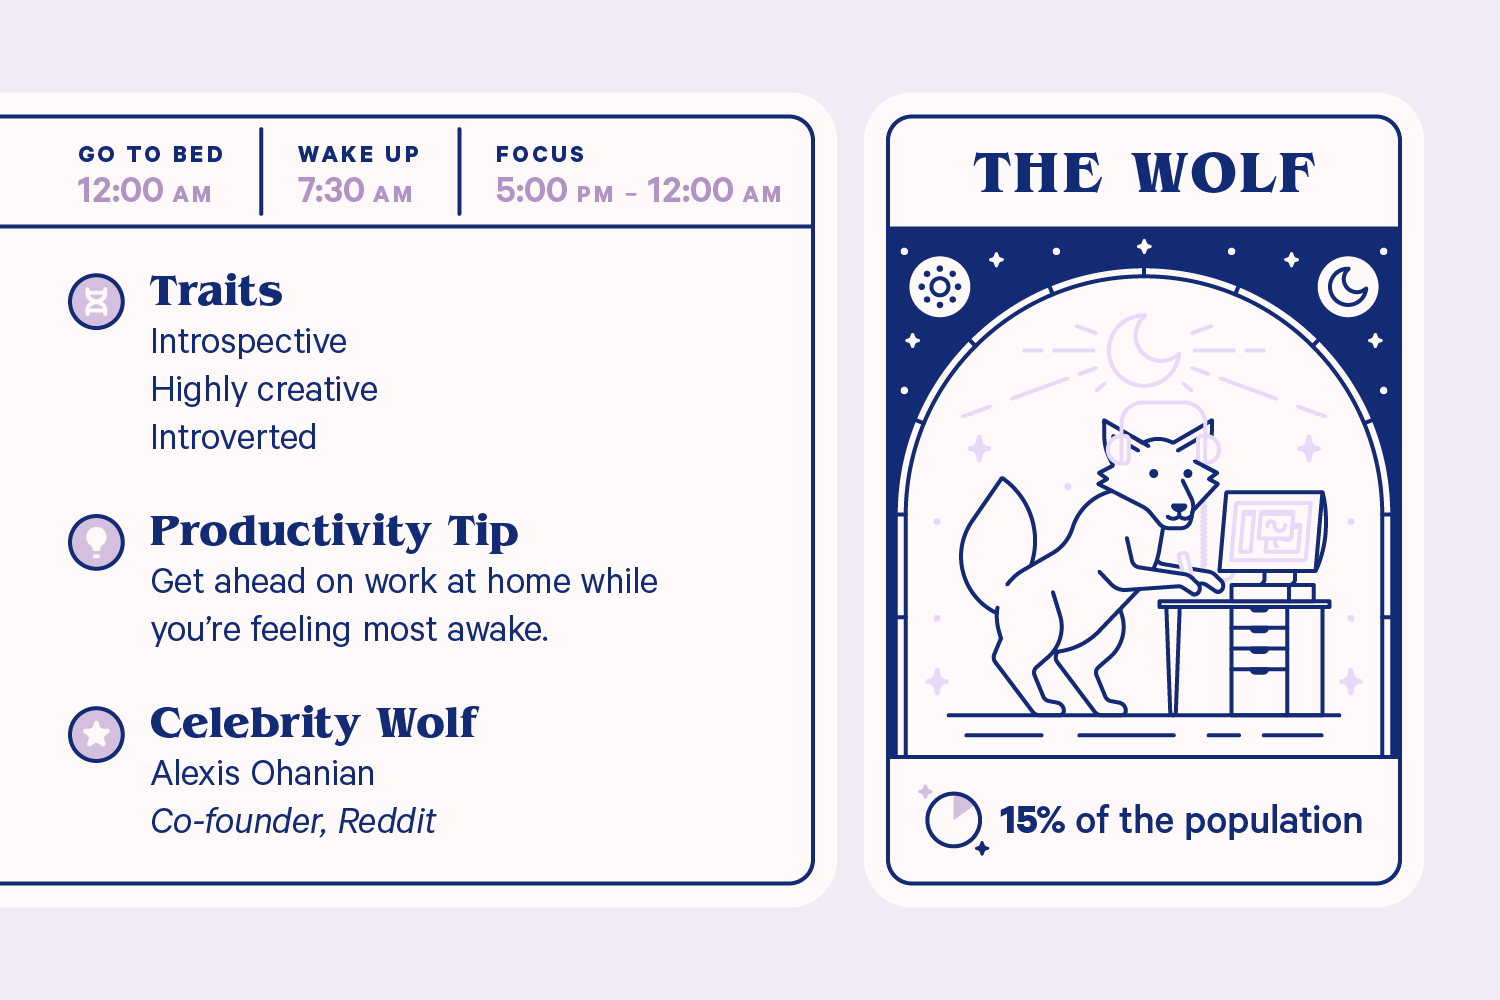 Infographic showing information on The Wolf. Goes to bed: 12:00 am, wakes at 7:30 am, focus time is from 5:00 pm to 12:00 am. Traits: Introspective, highly creative, introverted. Productivity tip: Get ahead on work at home while you're feeling most awake. Celebrity Wolf: lexis Ohanian, co-founder of Reddit.